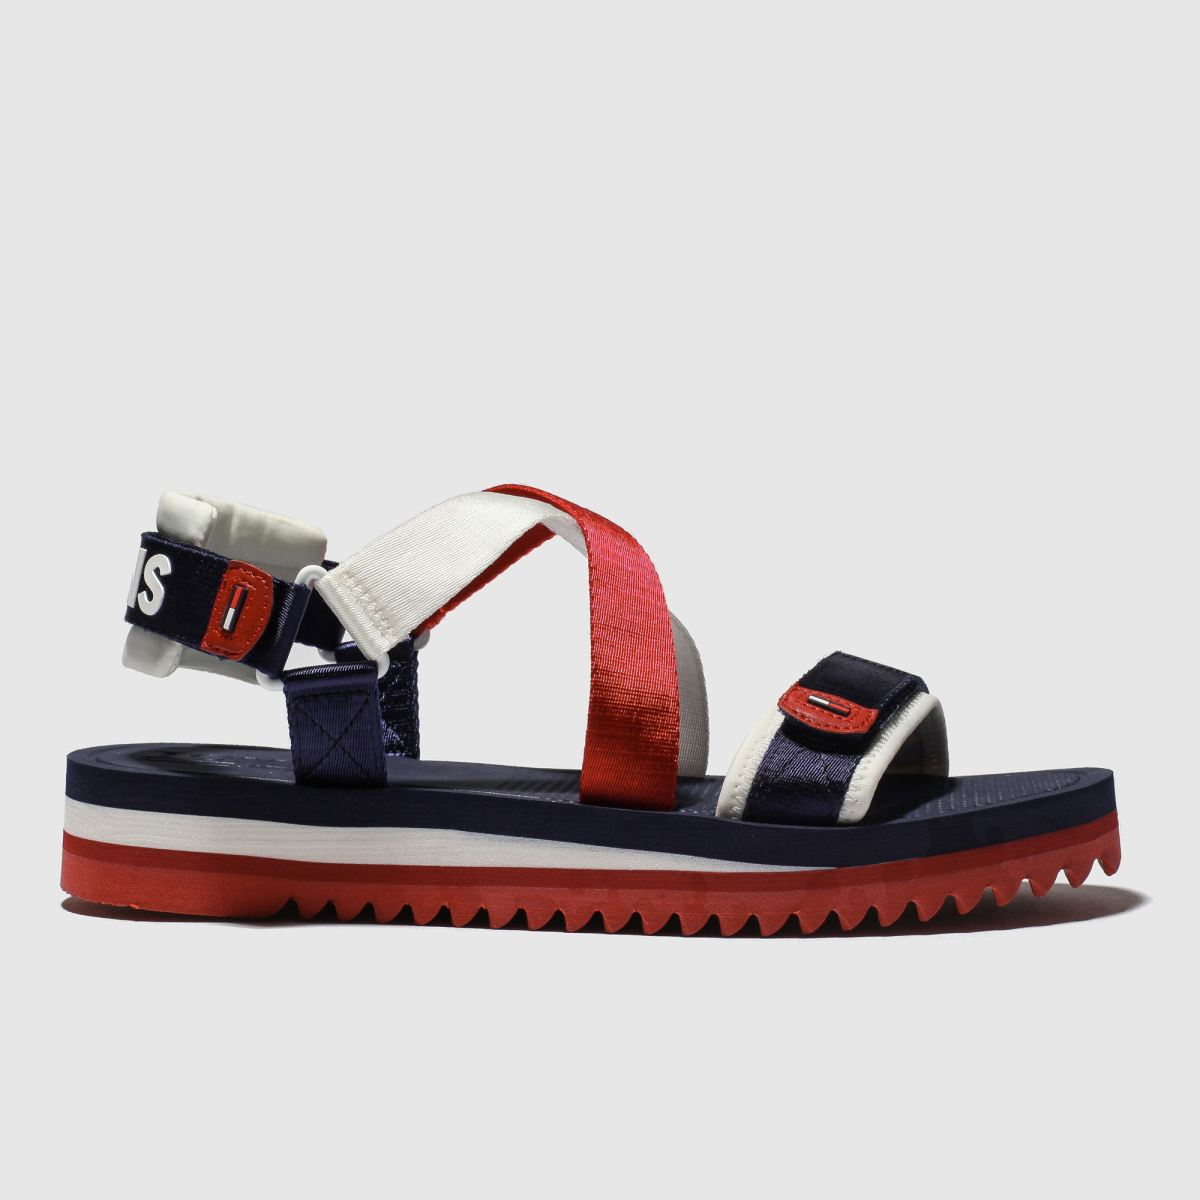 Tommy Hilfiger Navy & Red Tj Strap Sandal Sandals